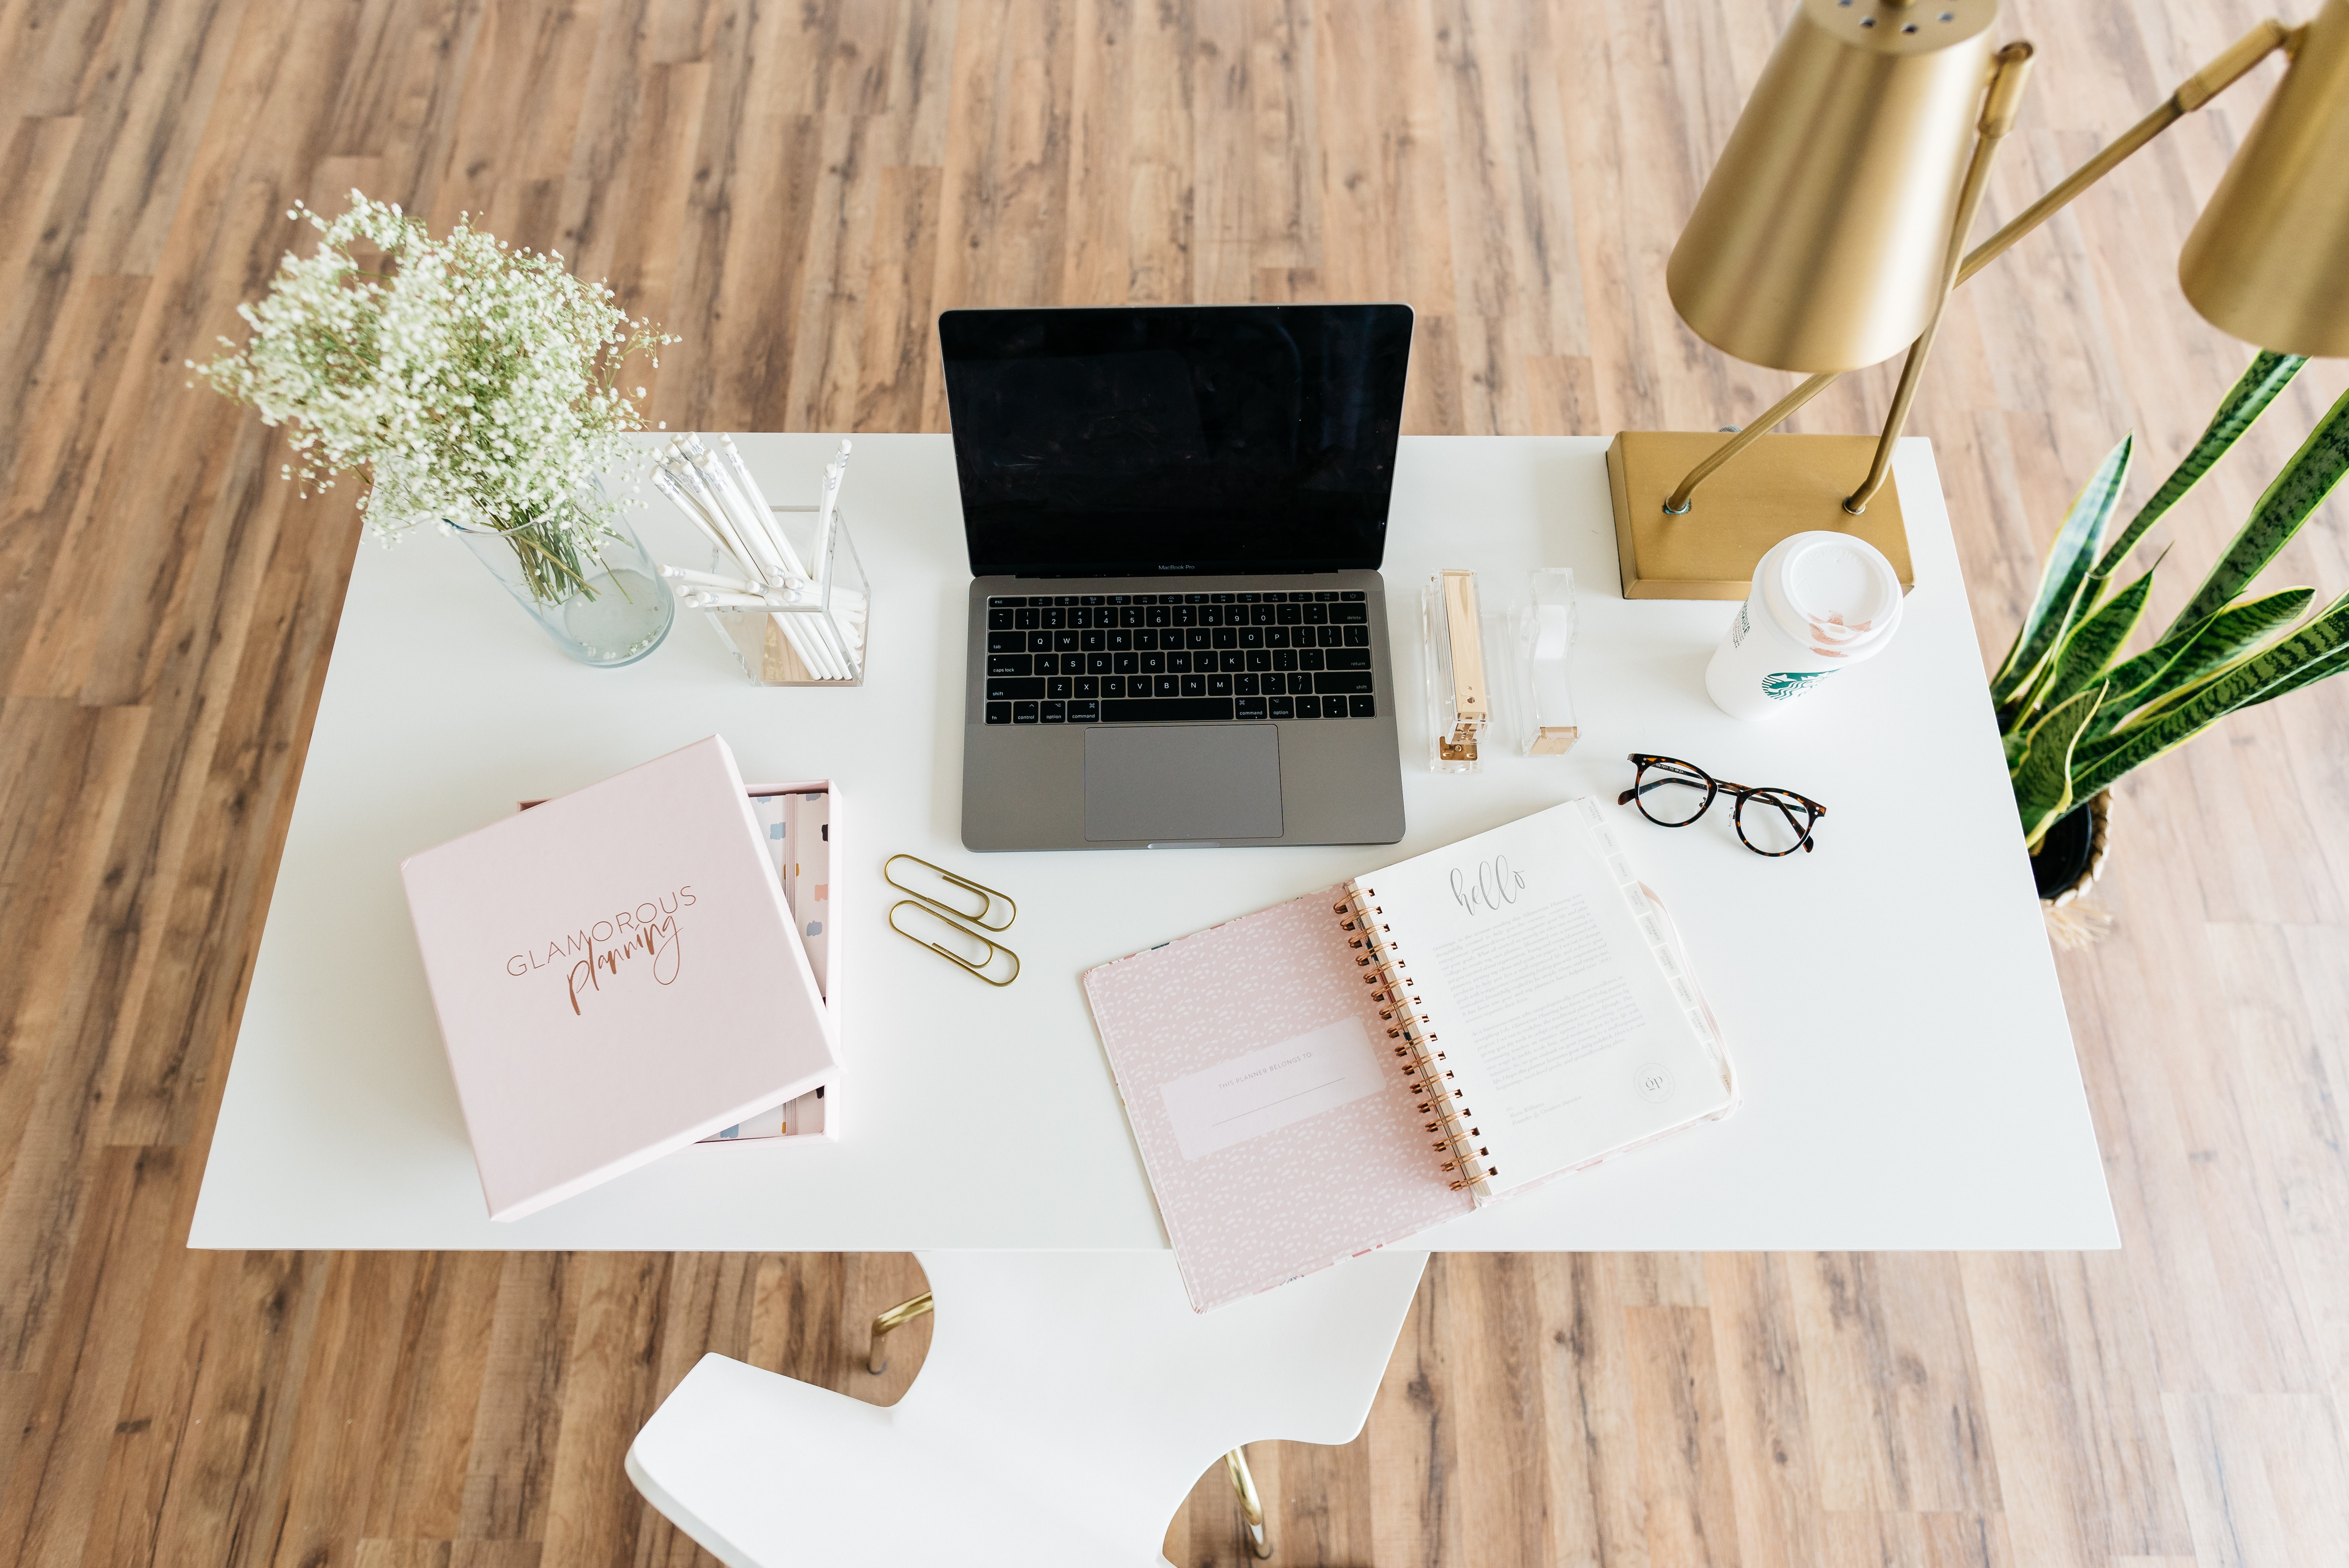 Busy woman's office and desk